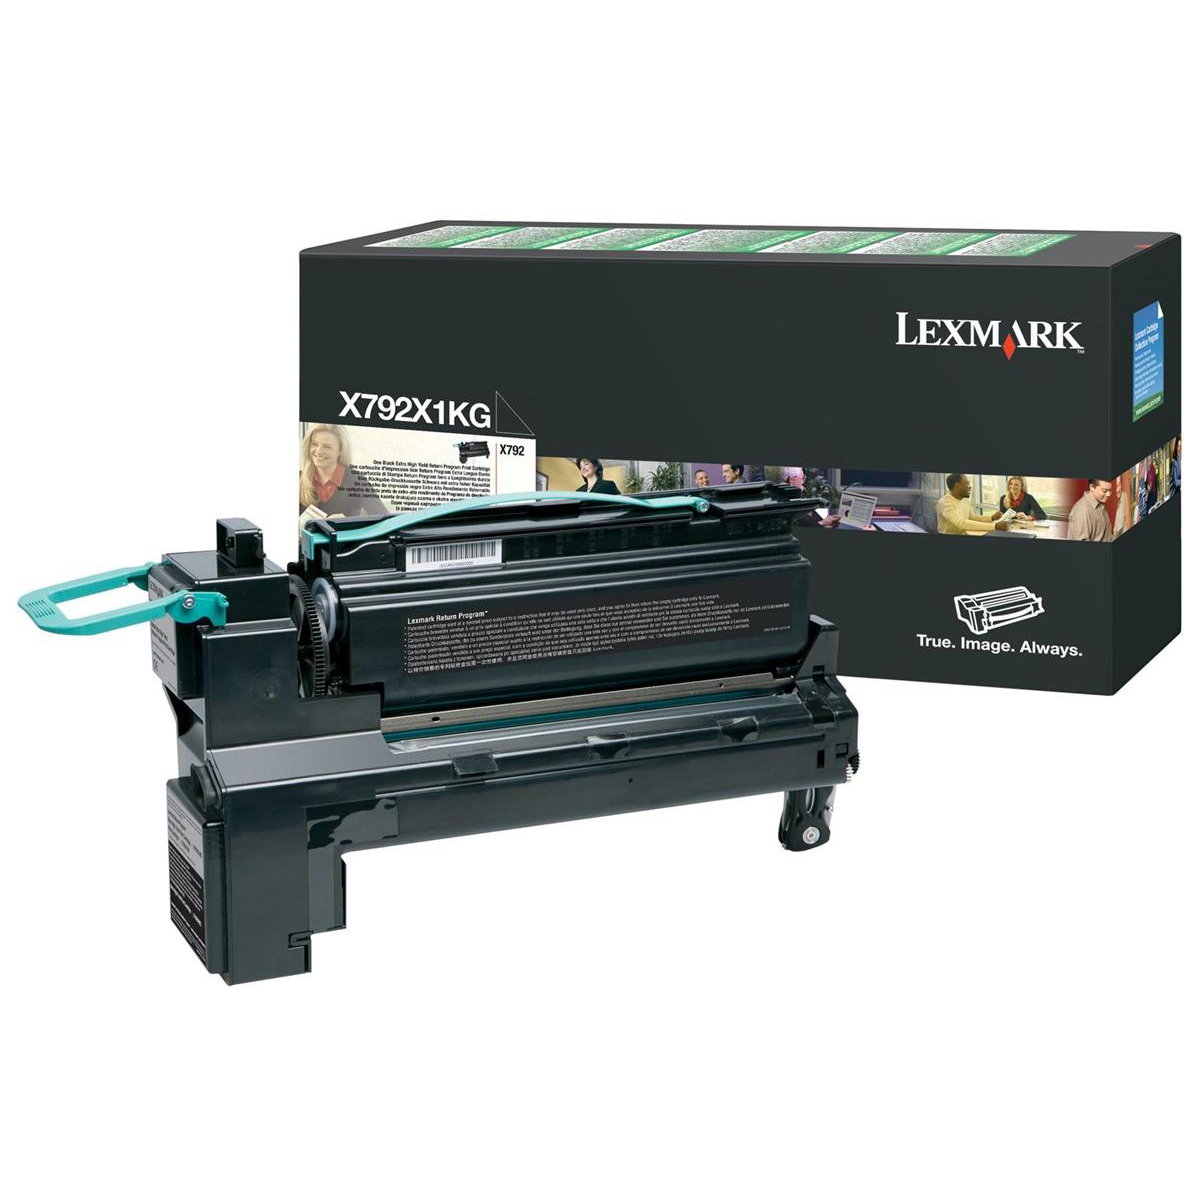 Lexmark X792 Toner Cartridge Return Program Extra High Yield Page Life 20000pp Black X792X1KG